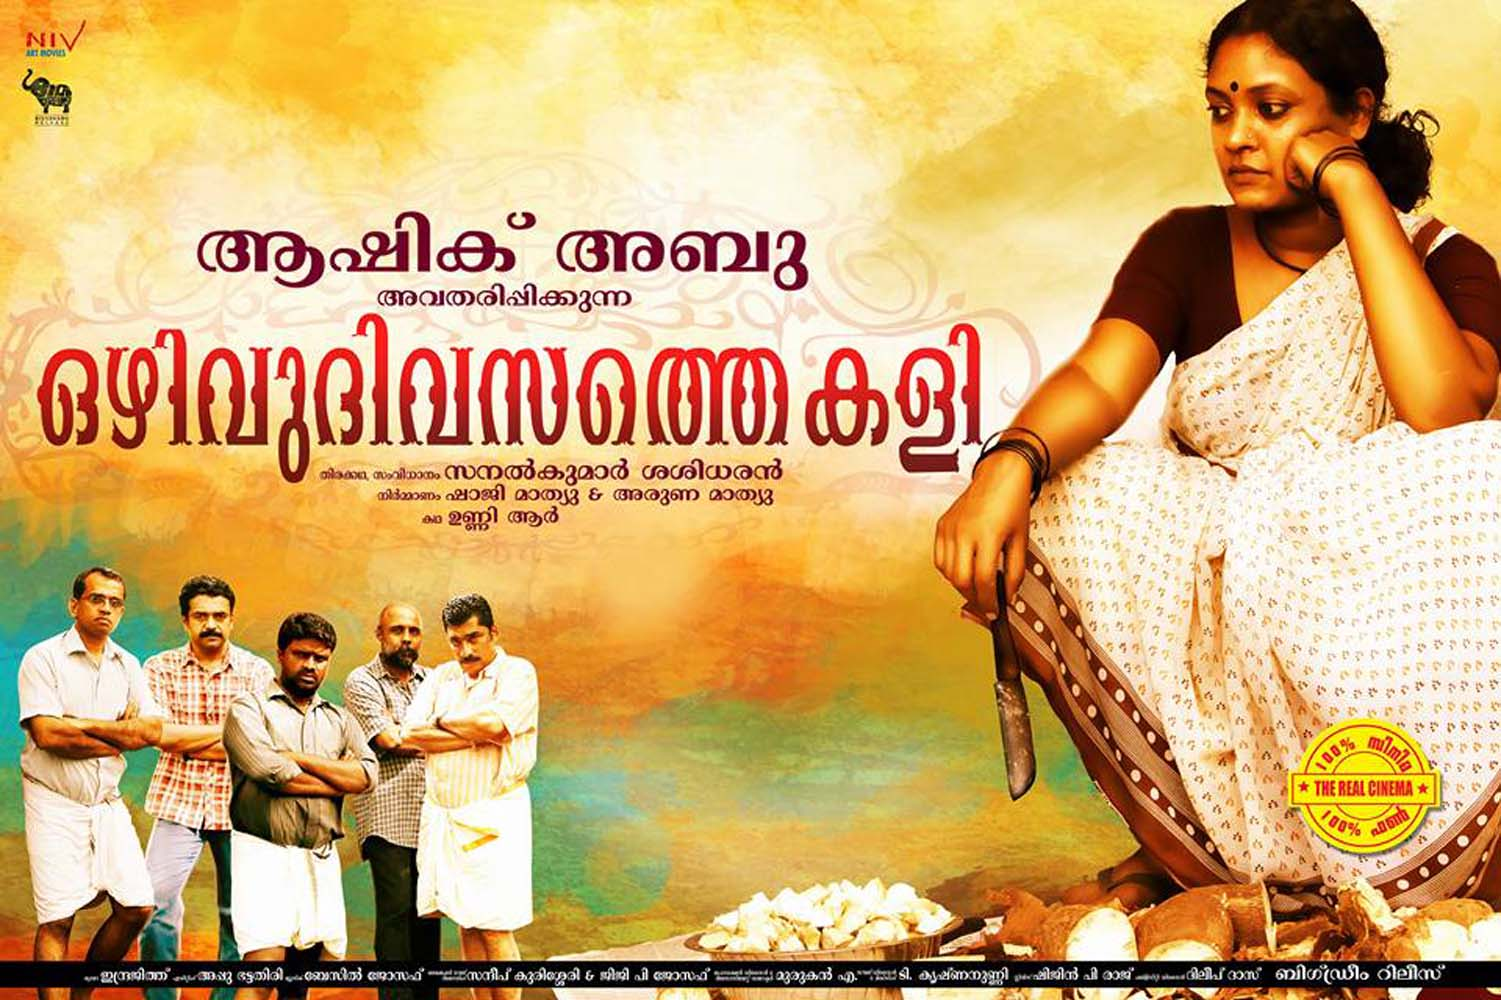 torrent download ipad 2016 malayalam movie download